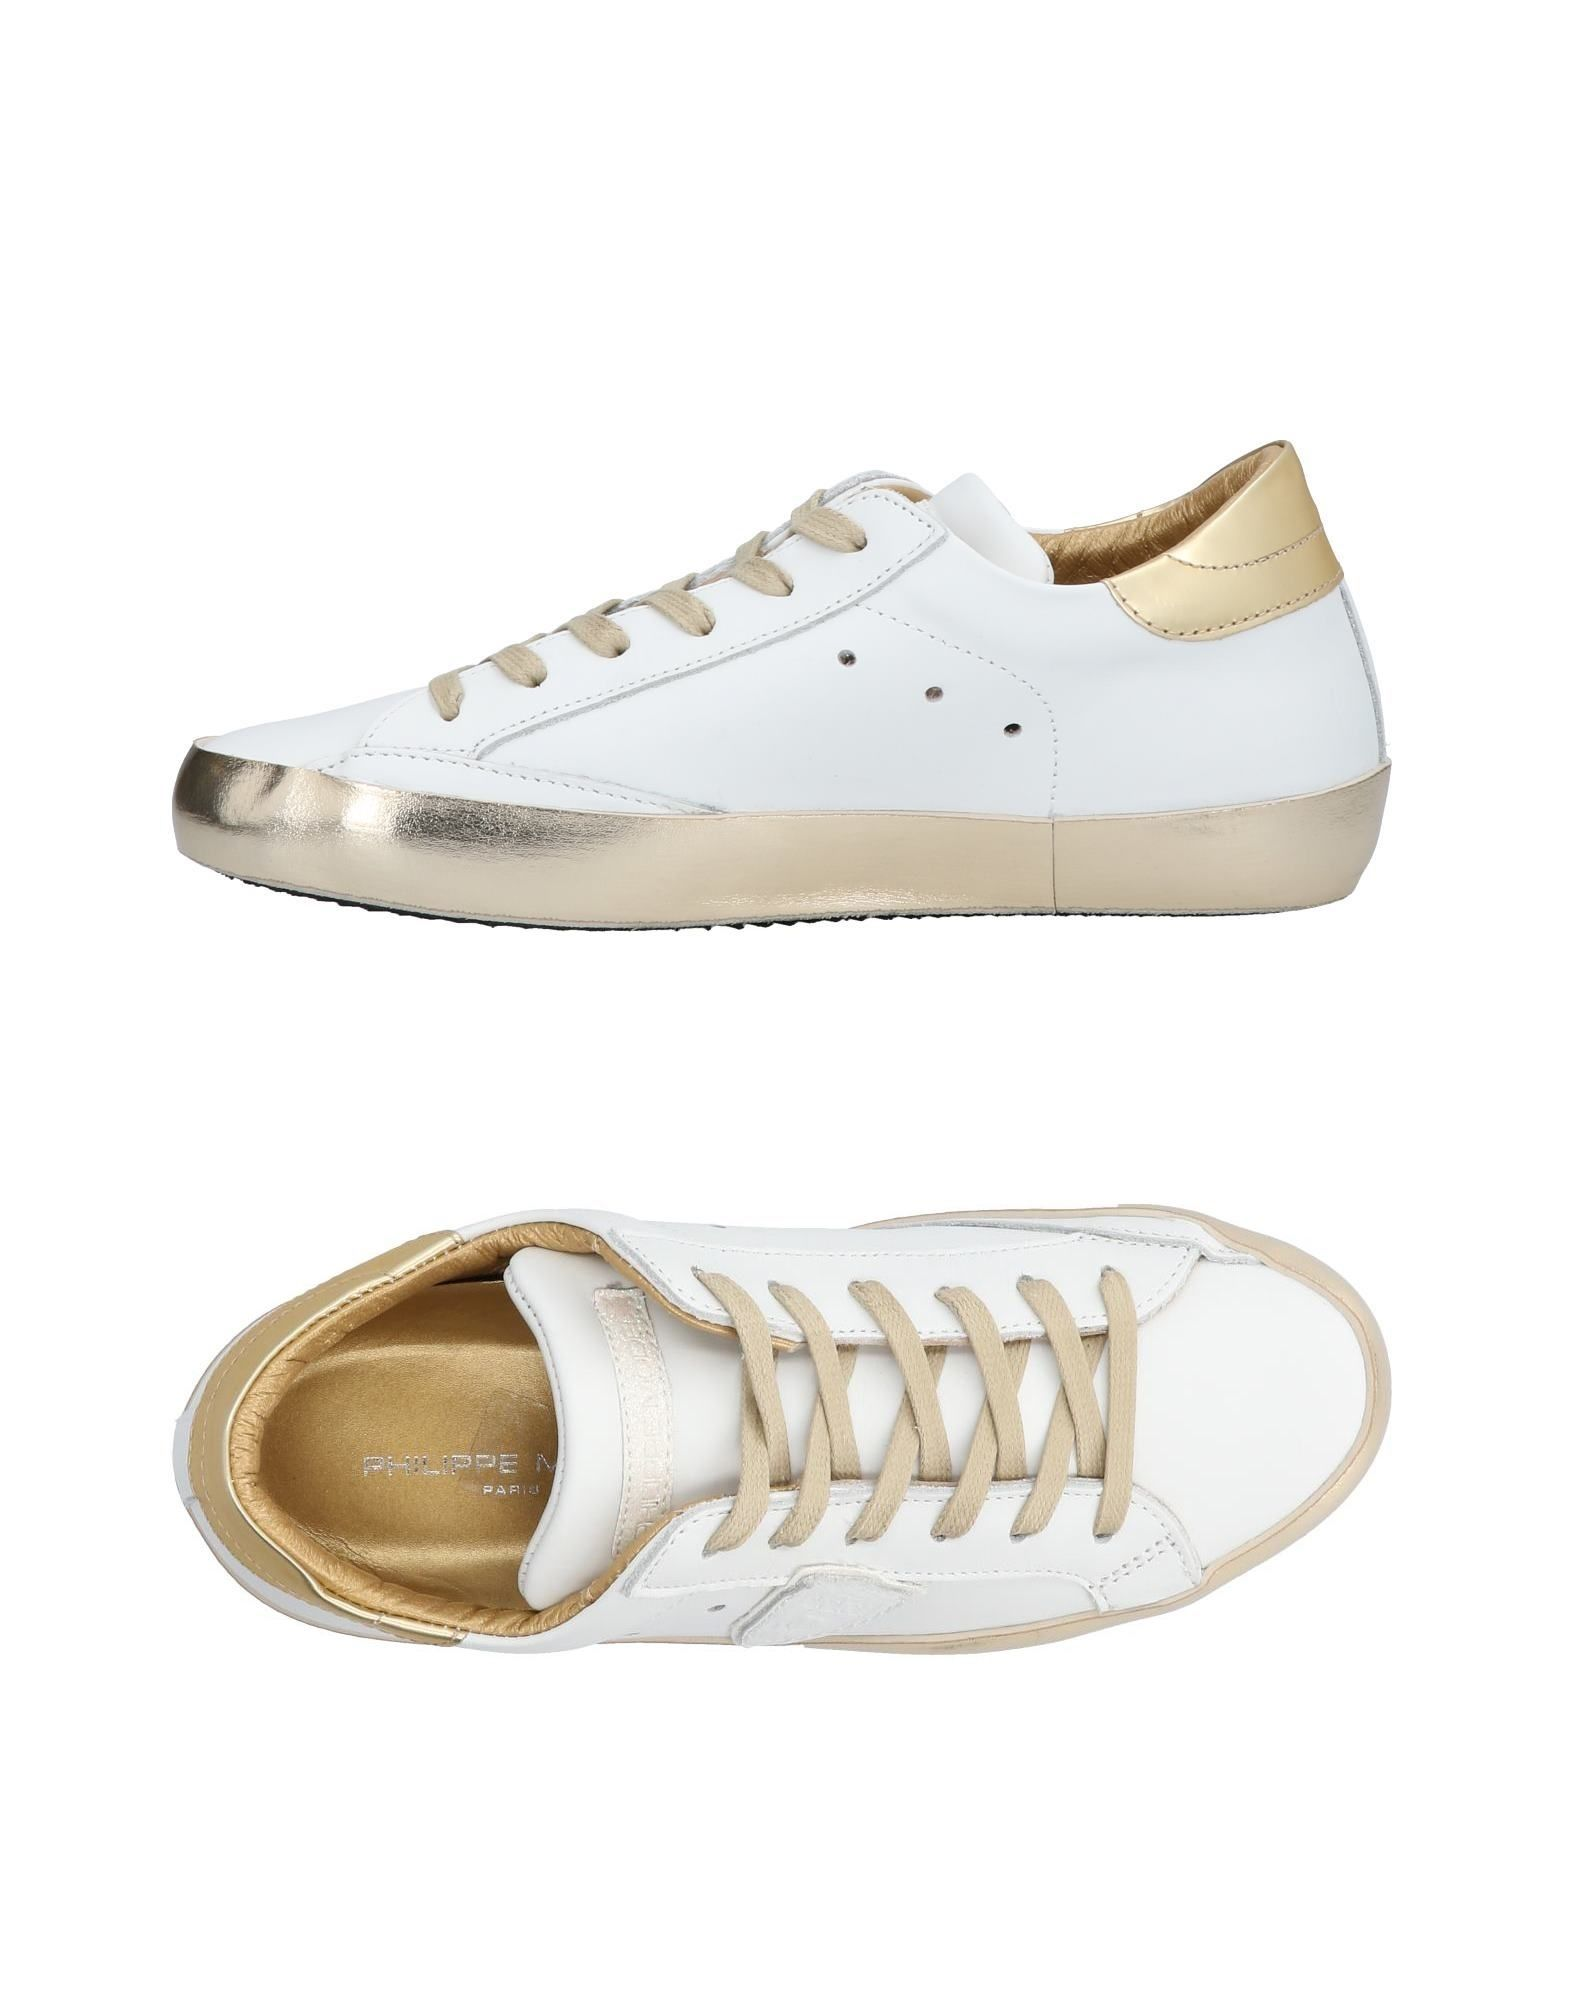 Philippe Acquista Sneakers online su Donna Model 4q1wdY